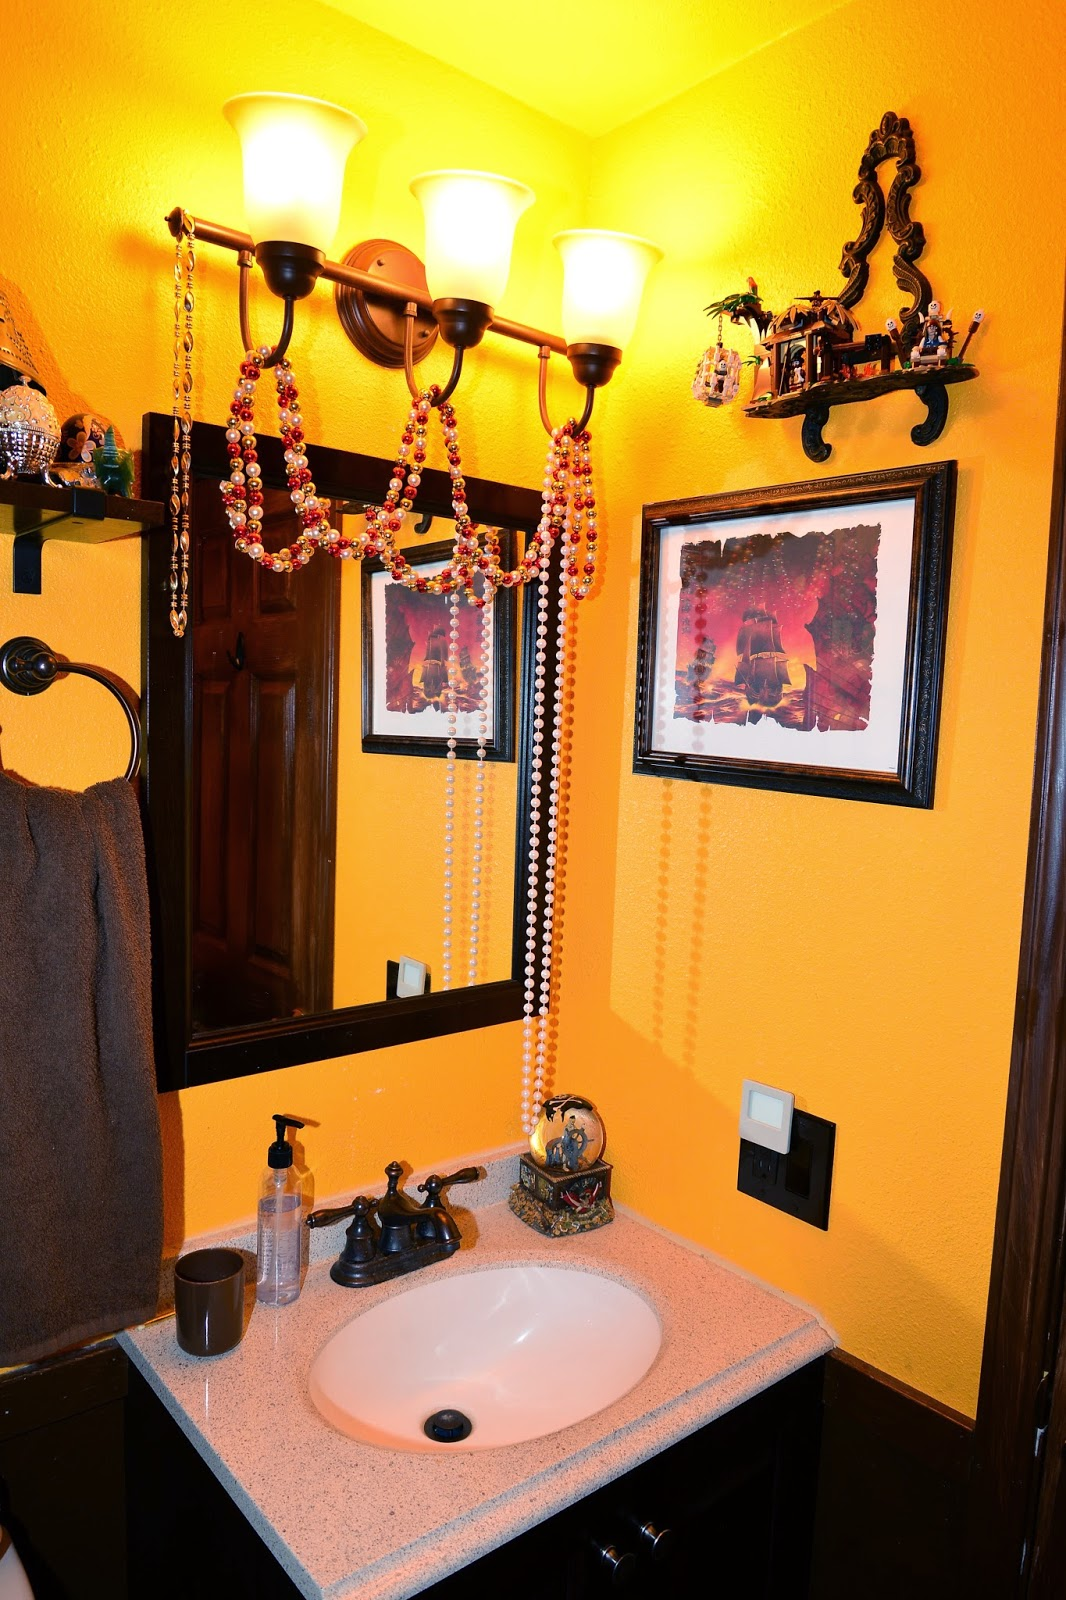 It's Just Me, Isn't It?: The Pirate Bathroom